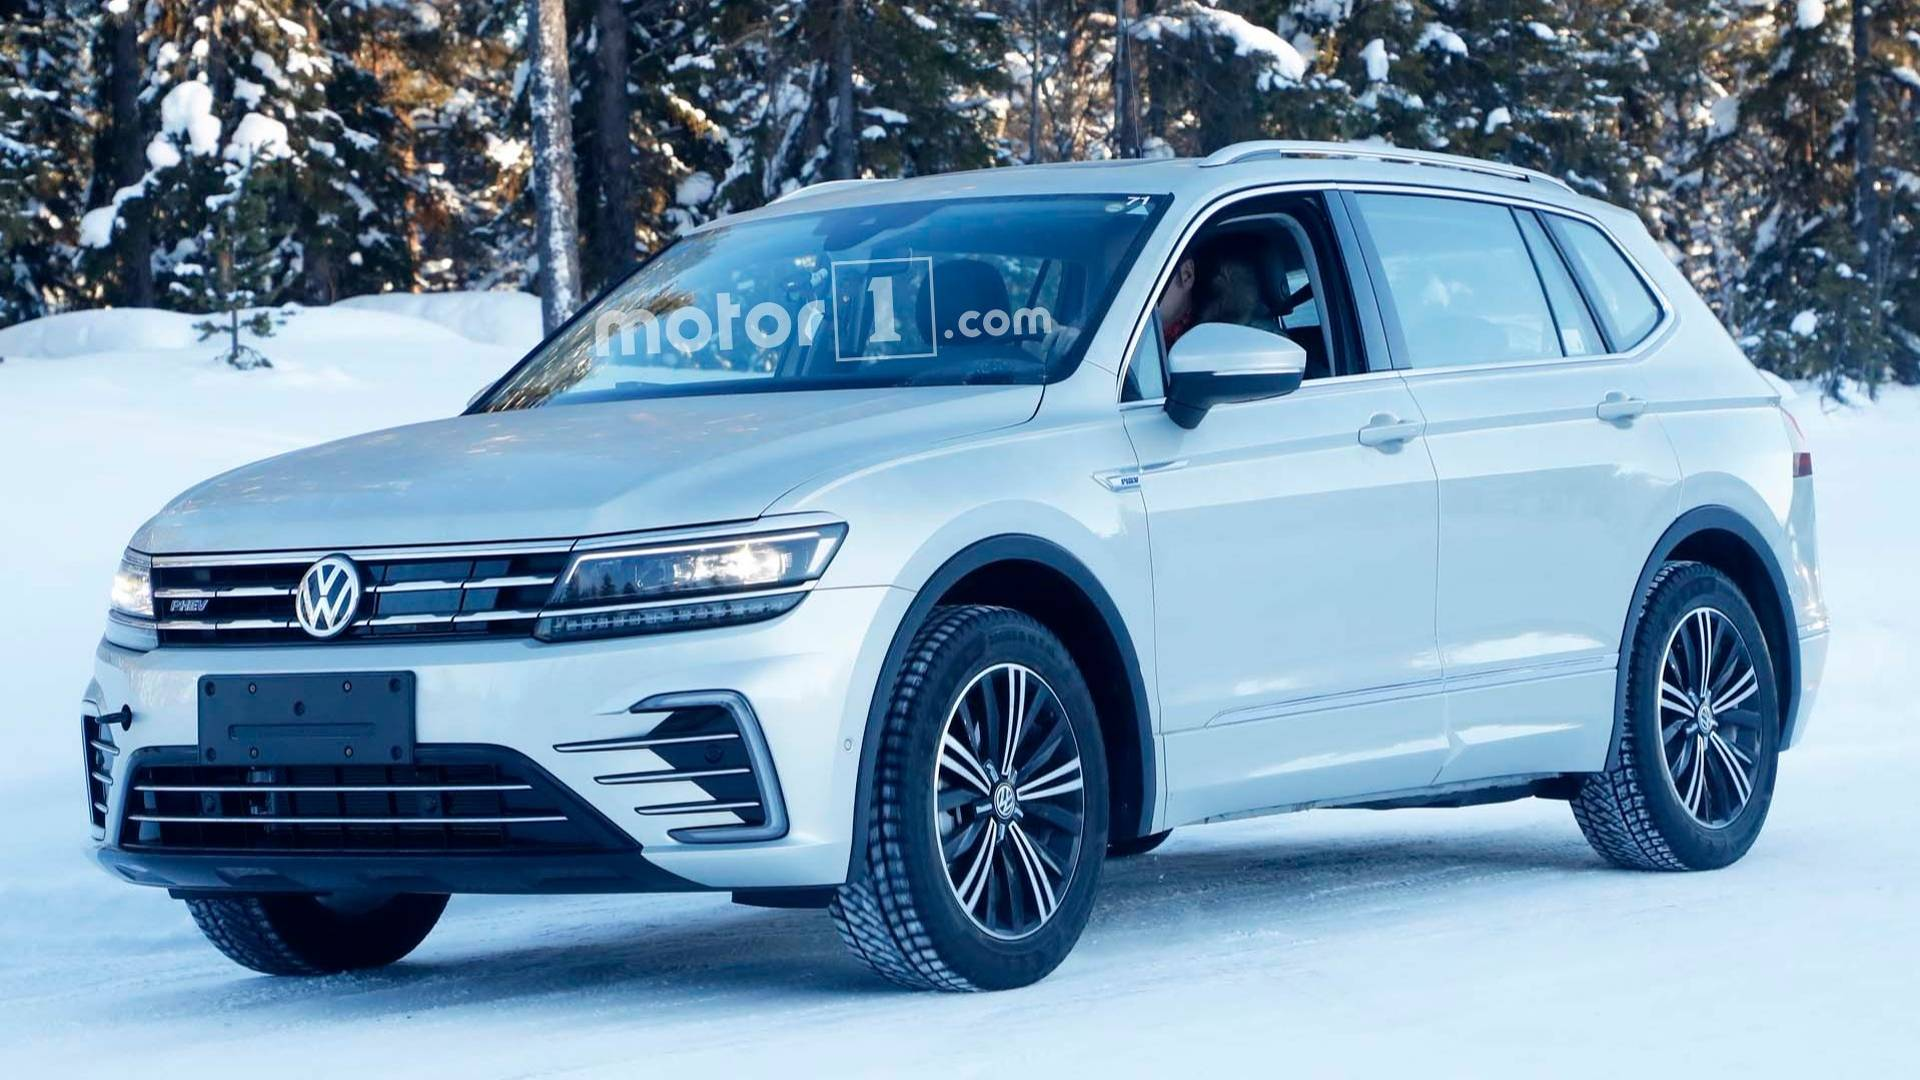 Vw Tiguan Plug In Hybrid Spied Without Any Camo Whatsoever